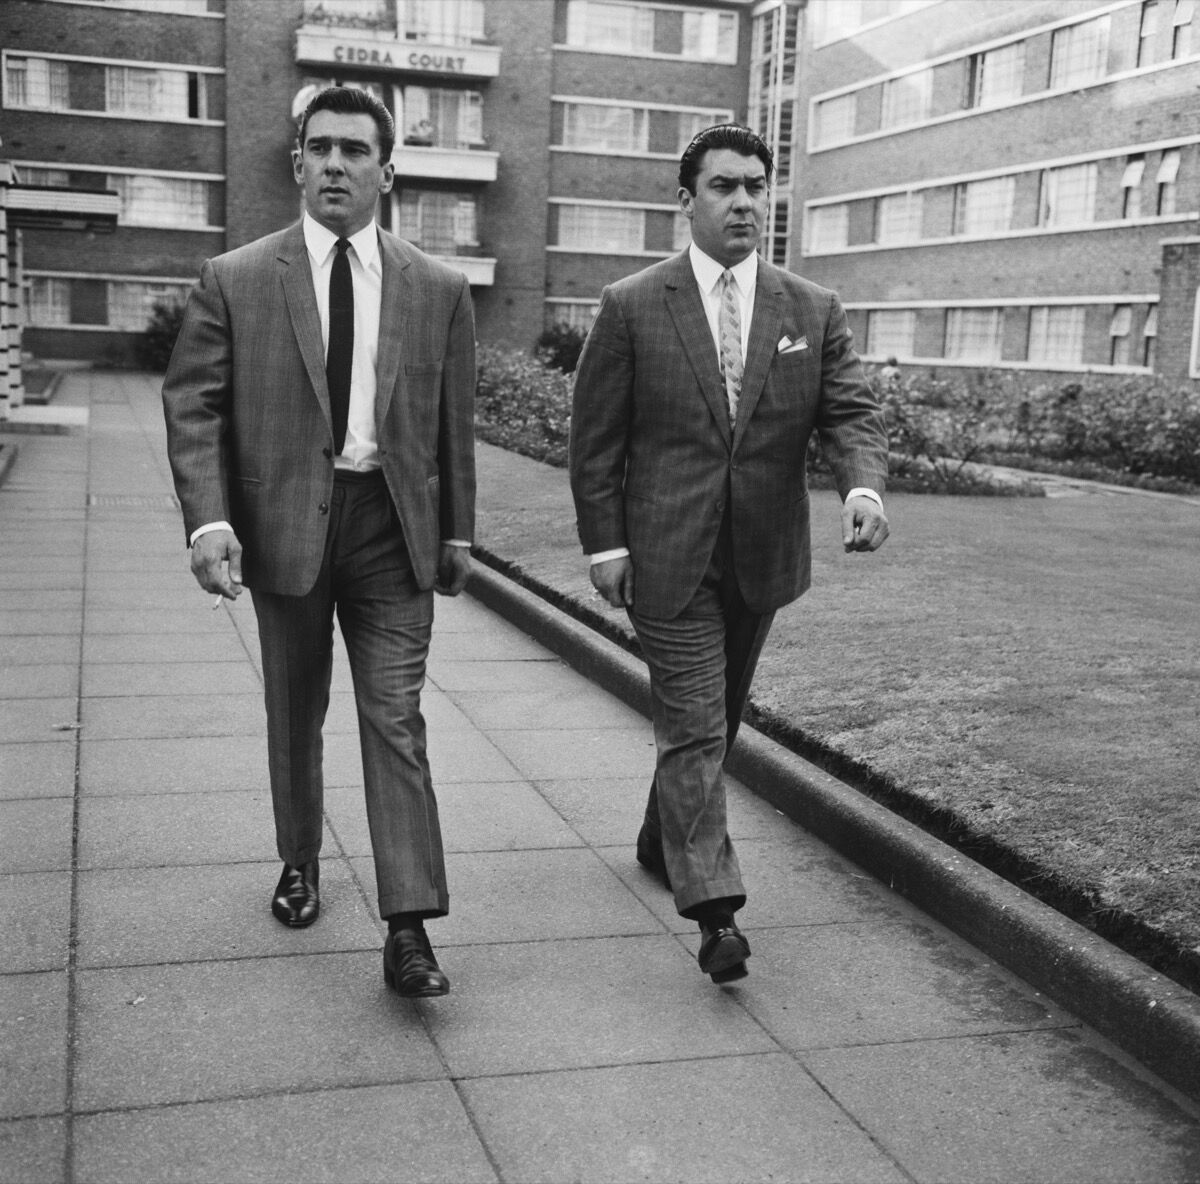 Twin brothers and organised crime bosses Ronnie and Reggie Kray in Cedra Court, off Cazenove Road in northeast London, 1964. Photo by Terry Disney/Express/Getty Images.